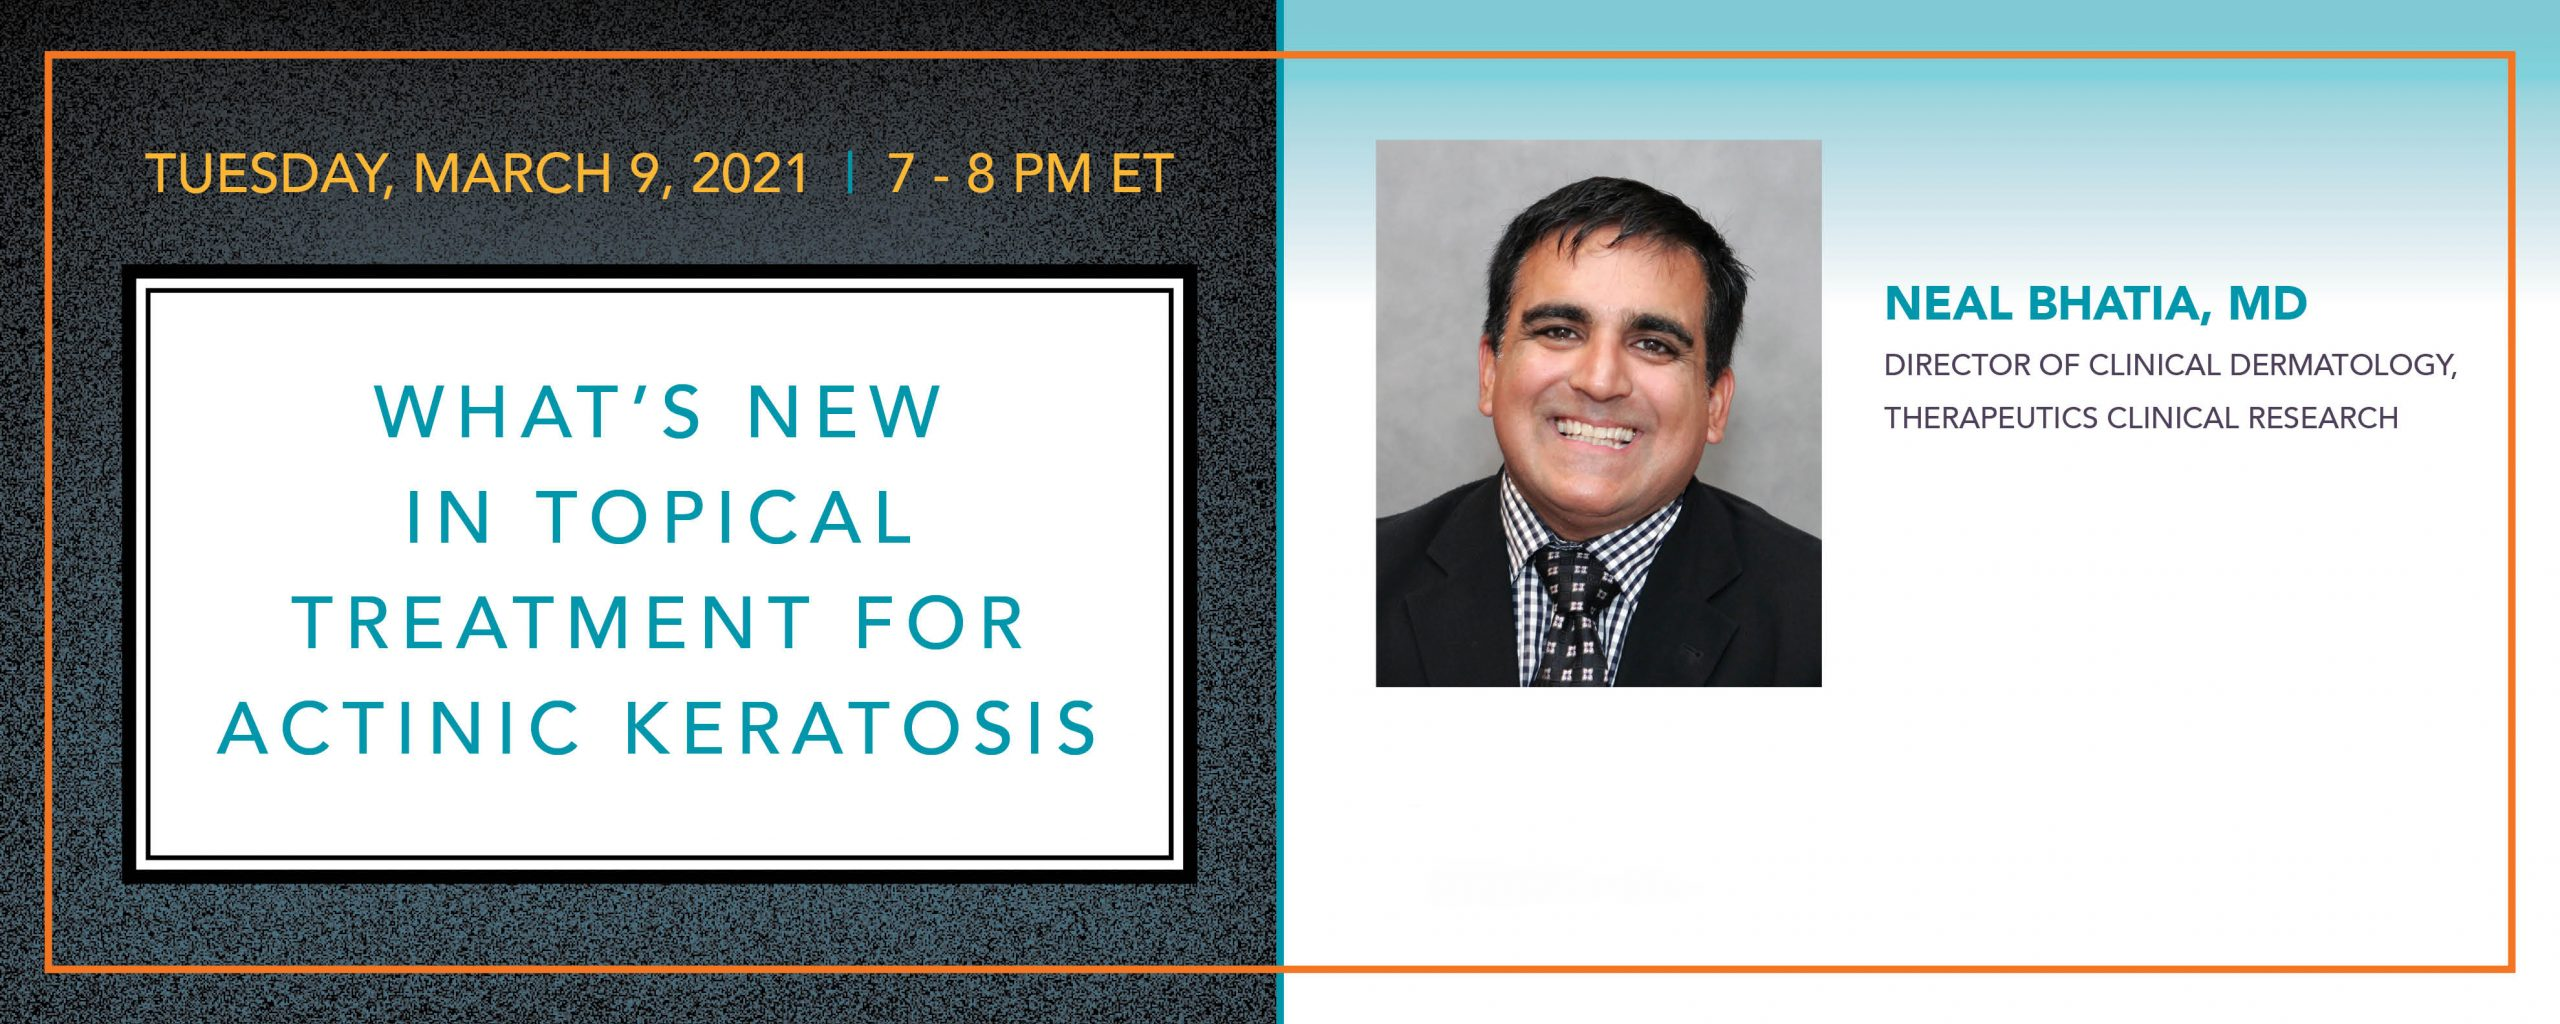 What's New in Topical Treatment for Actinic Keratosis